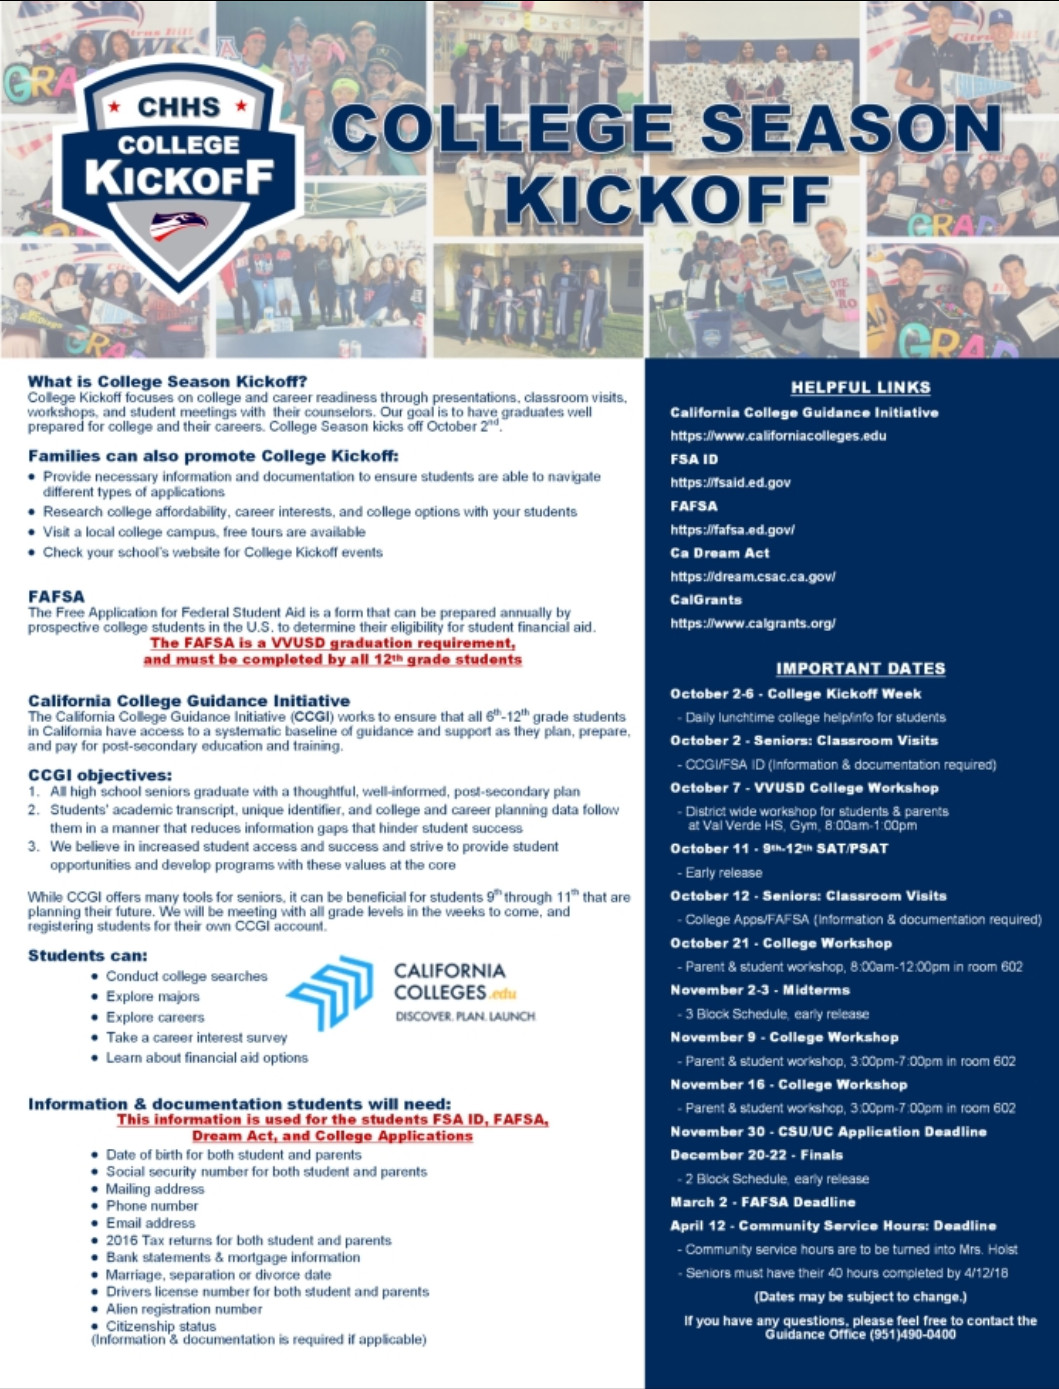 college season kickoff flyer